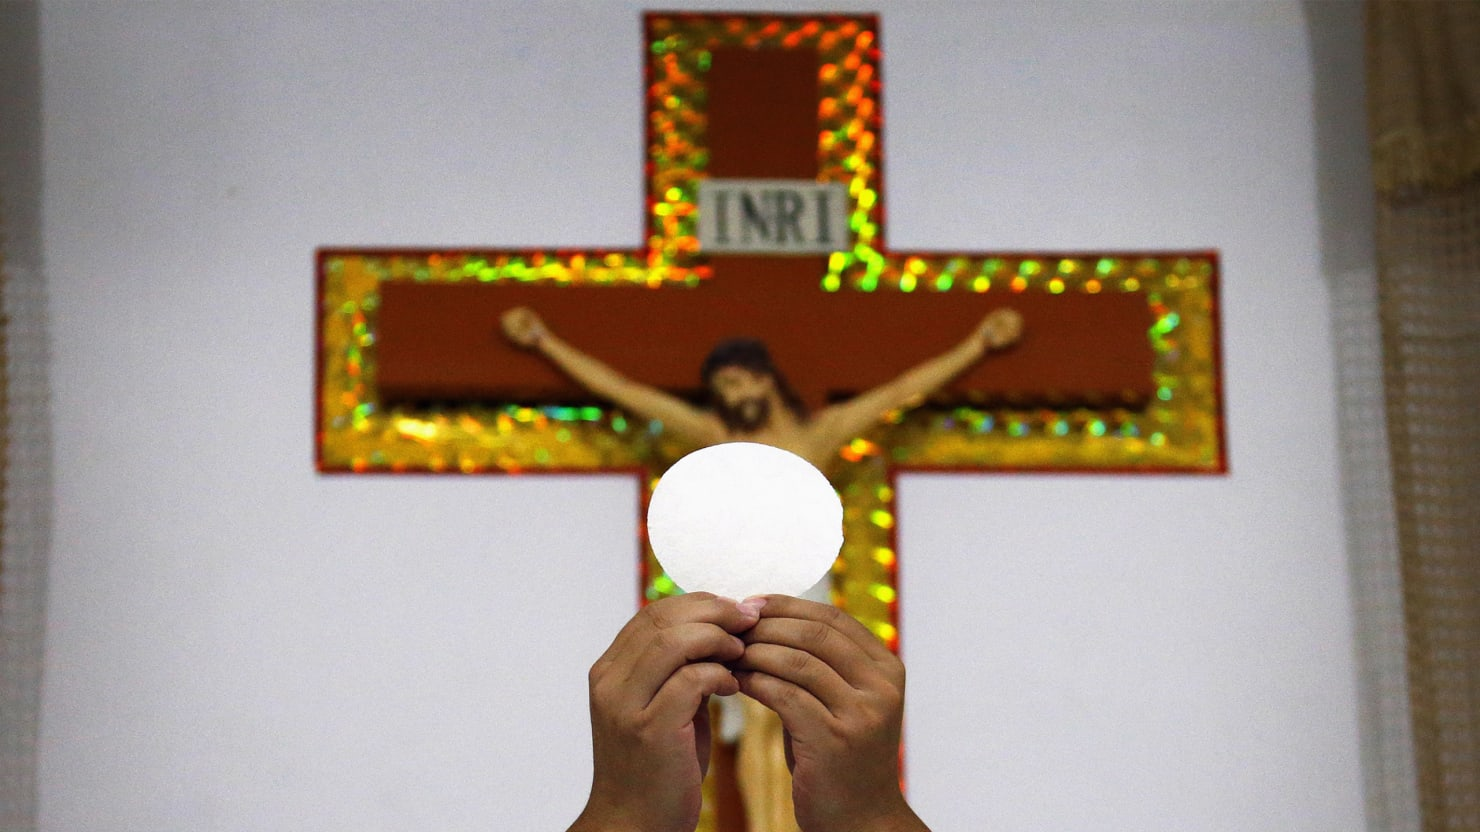 Chinas Crackdown On Christian Churches - Christian religion